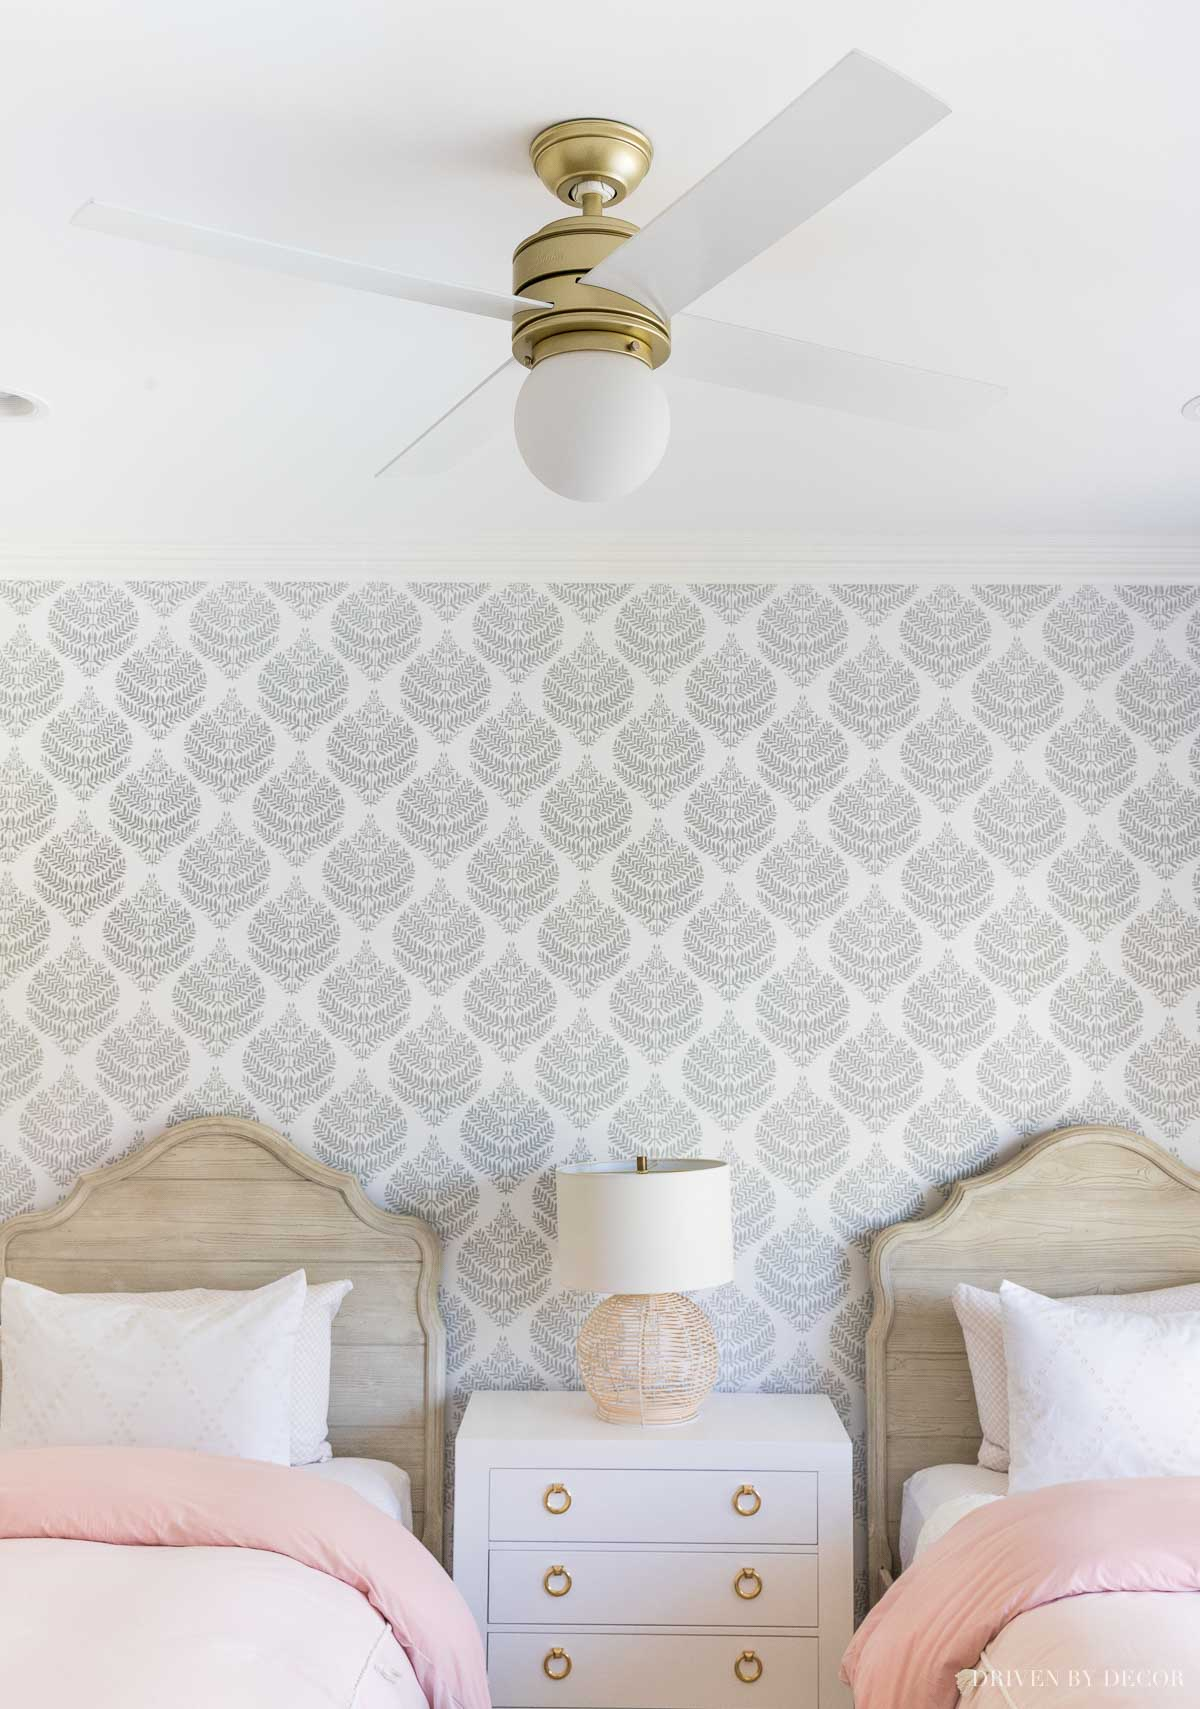 Ten Stylish Ceiling Fans It S Time To Kick Your Dated Ones To The Curb Driven By Decor